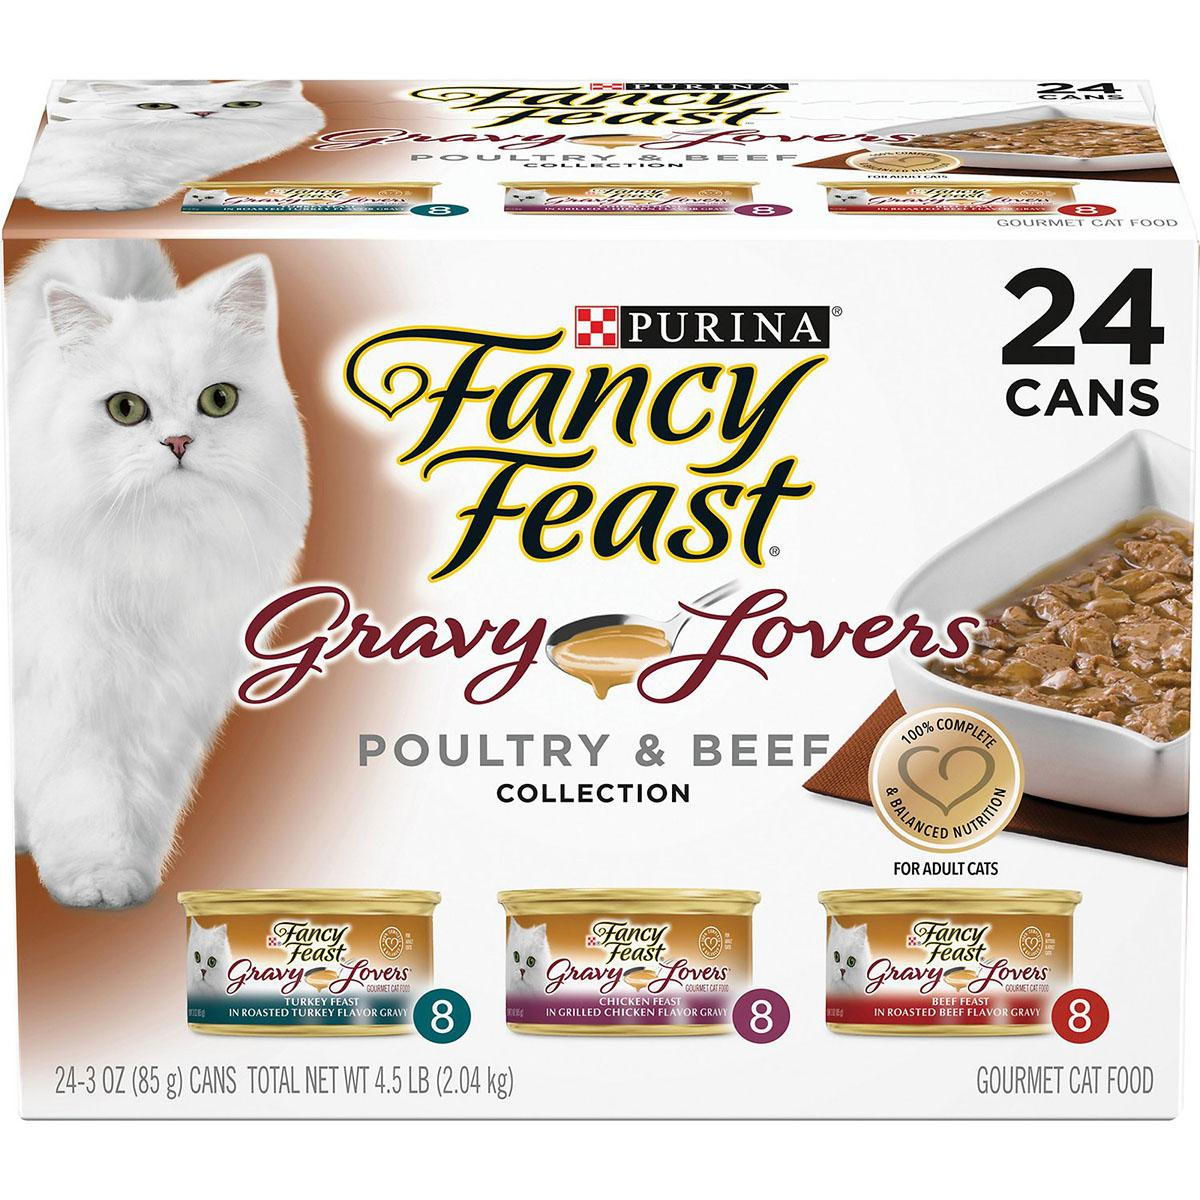 BaxterBoo – Purina Fancy Feast Gravy Lovers Poultry & Beef Canned Cat Food – Variety Pack